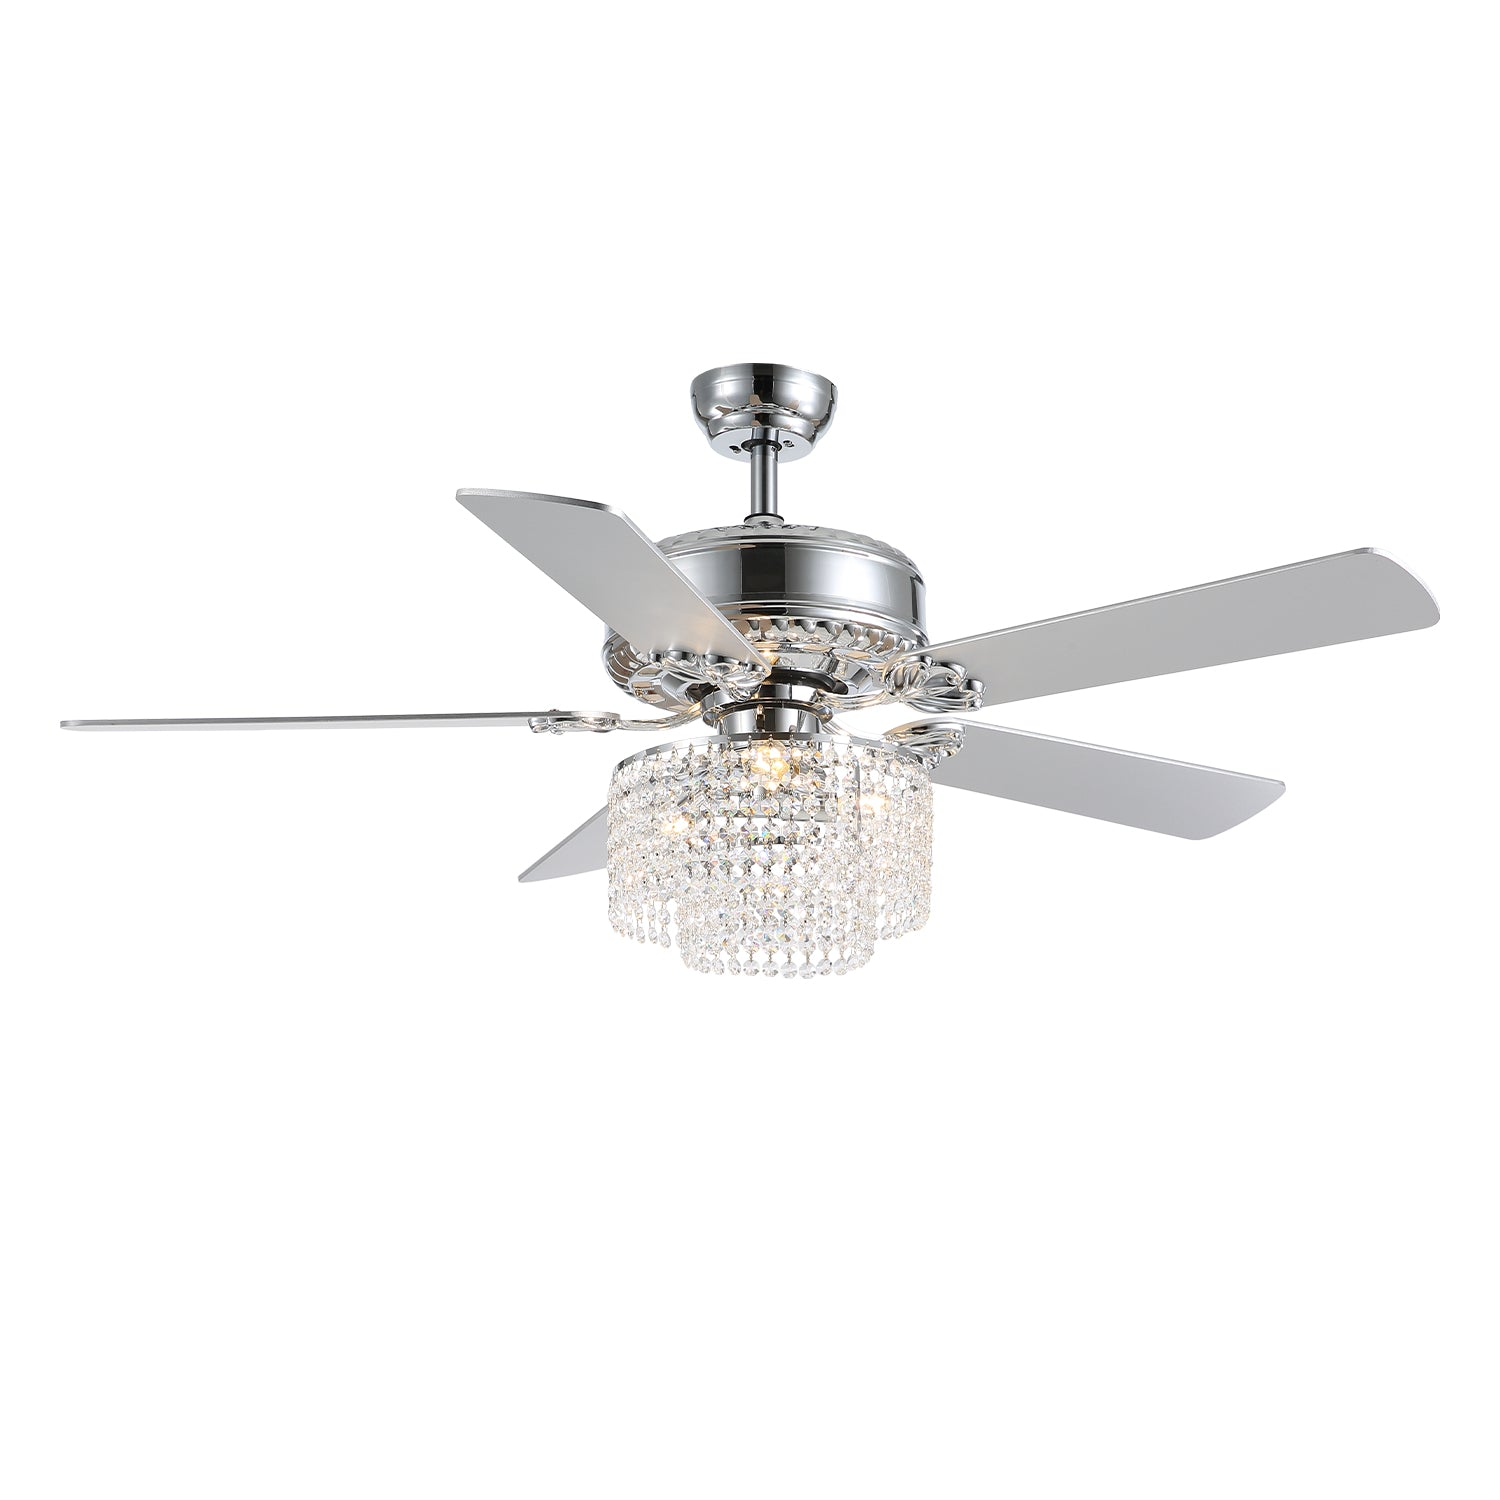 Ceiling Fan with Finished Blades and Crystal Shade